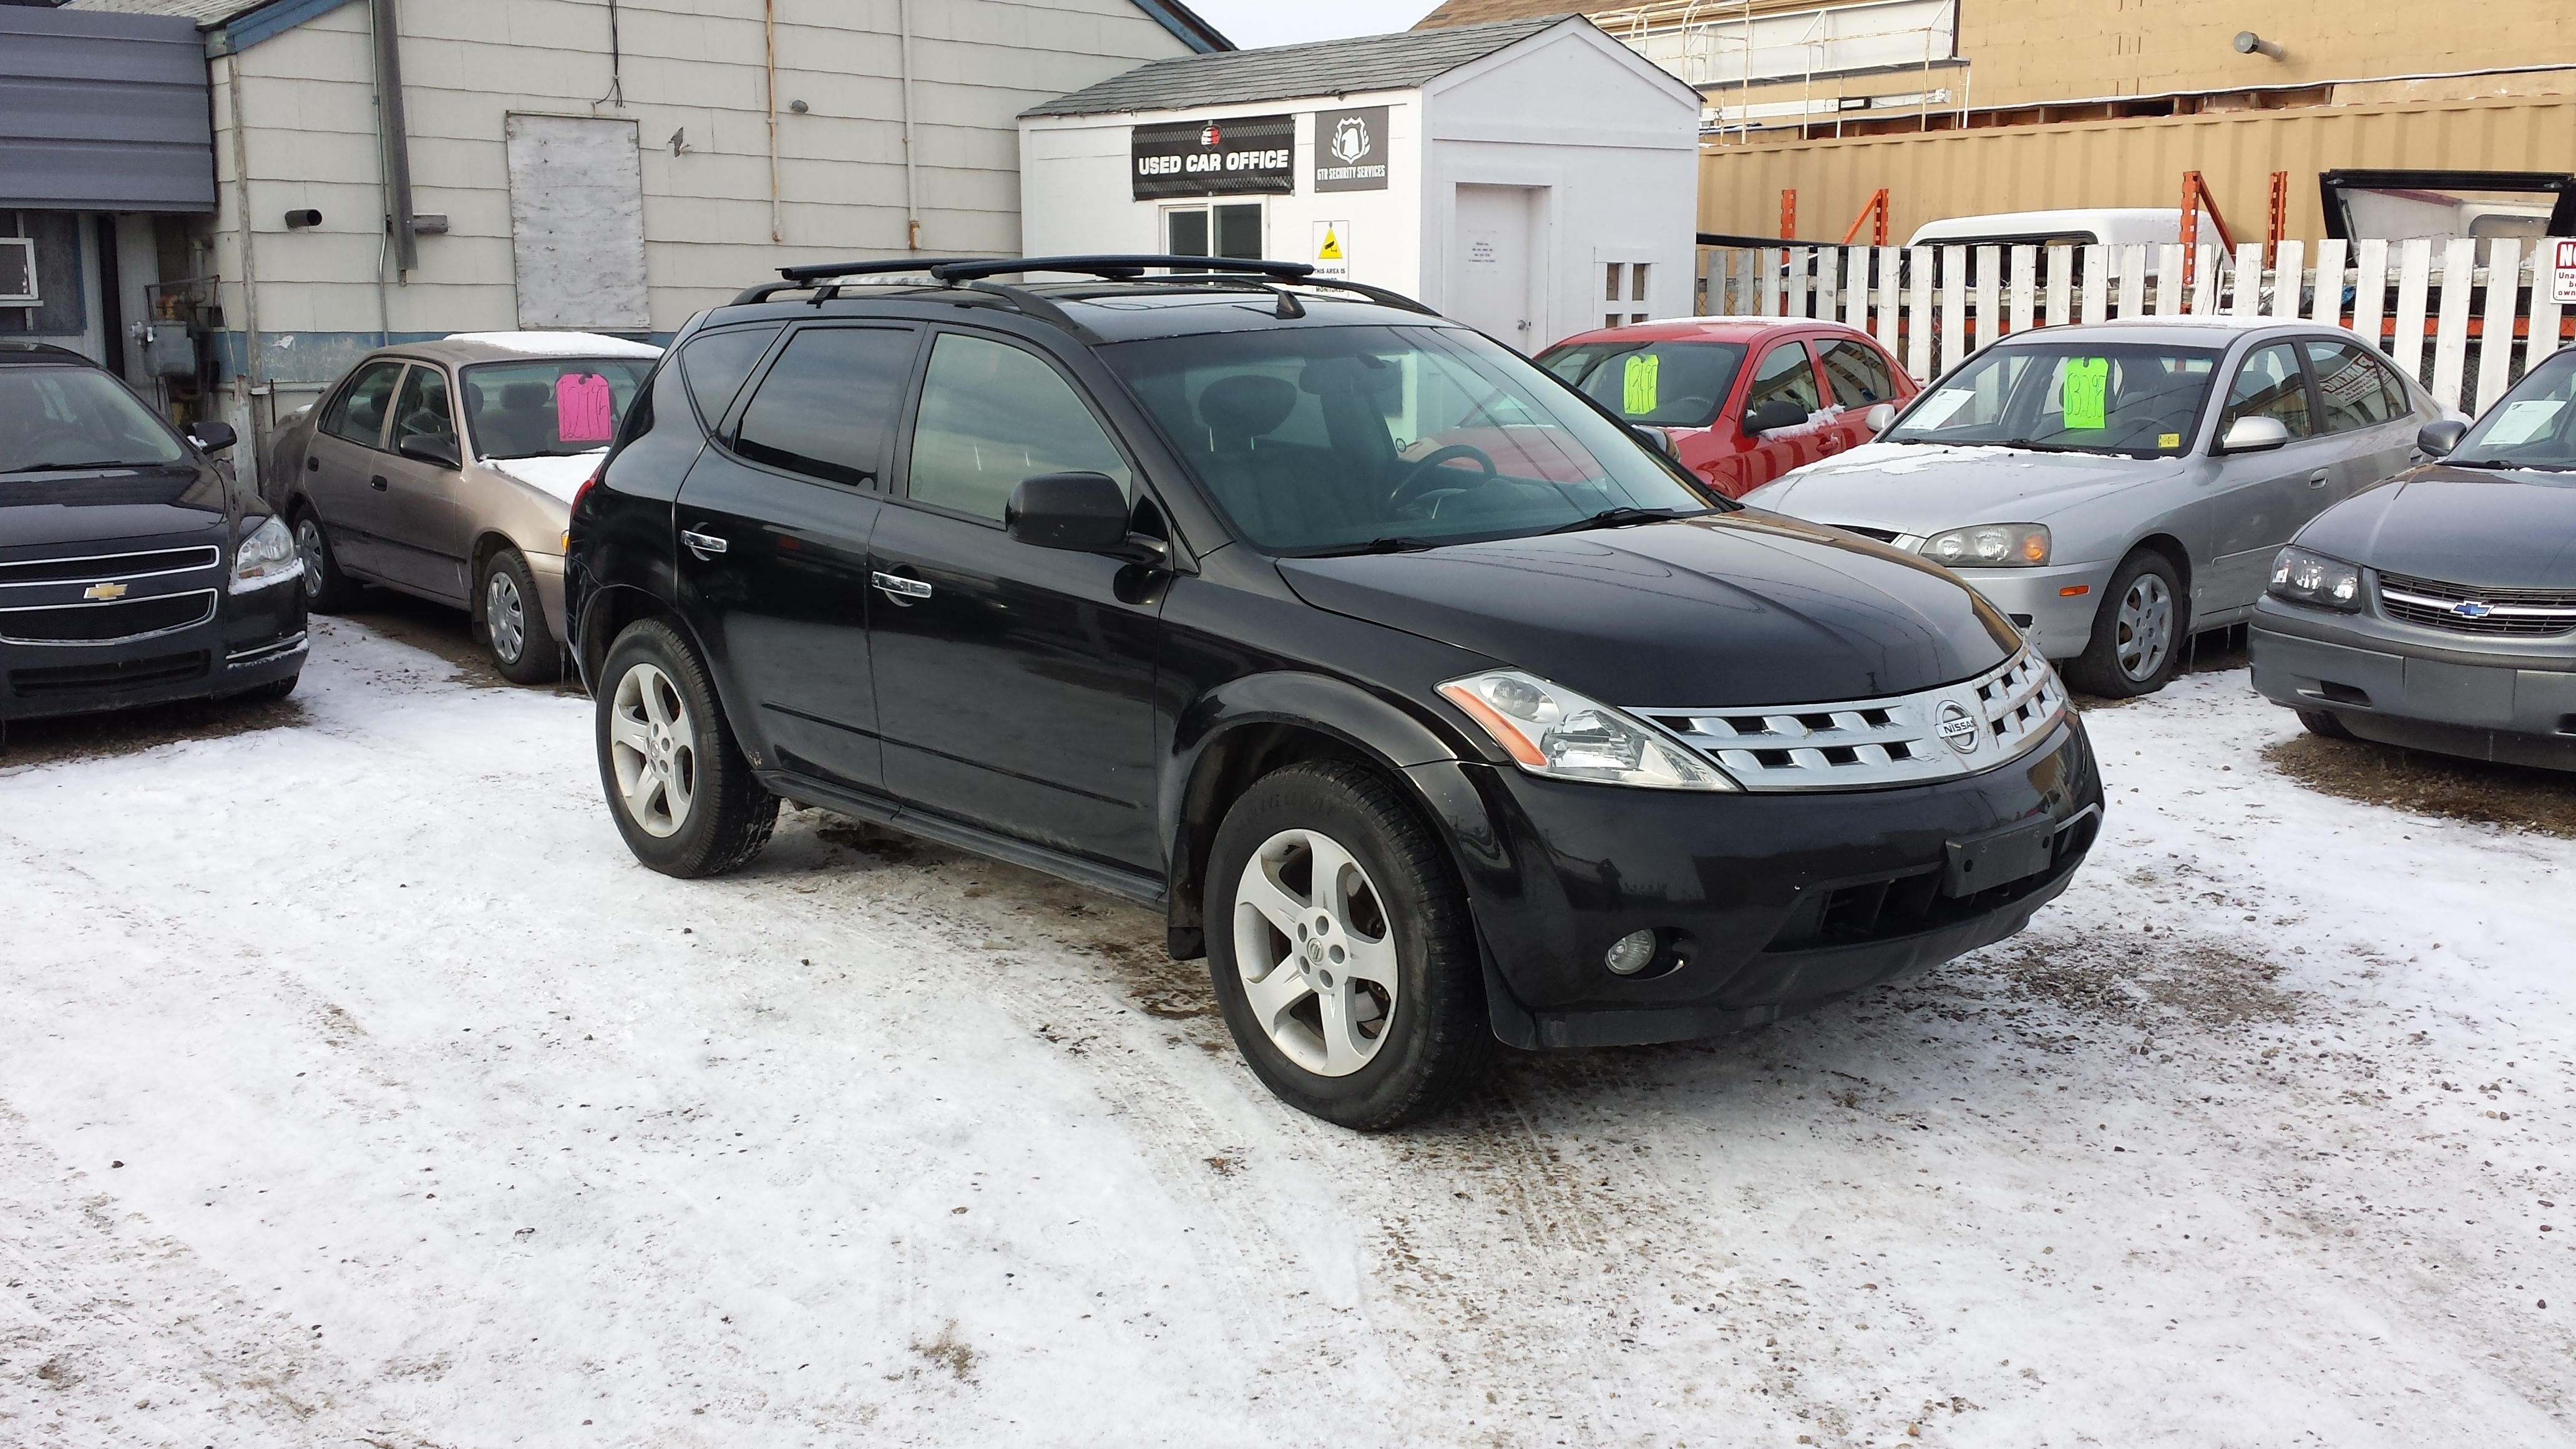 got for this nissan test on all while murano renting road job my vehicle though only brand sorts price to conditions blog a miles the past audvidgeek of img new week i run s with it using